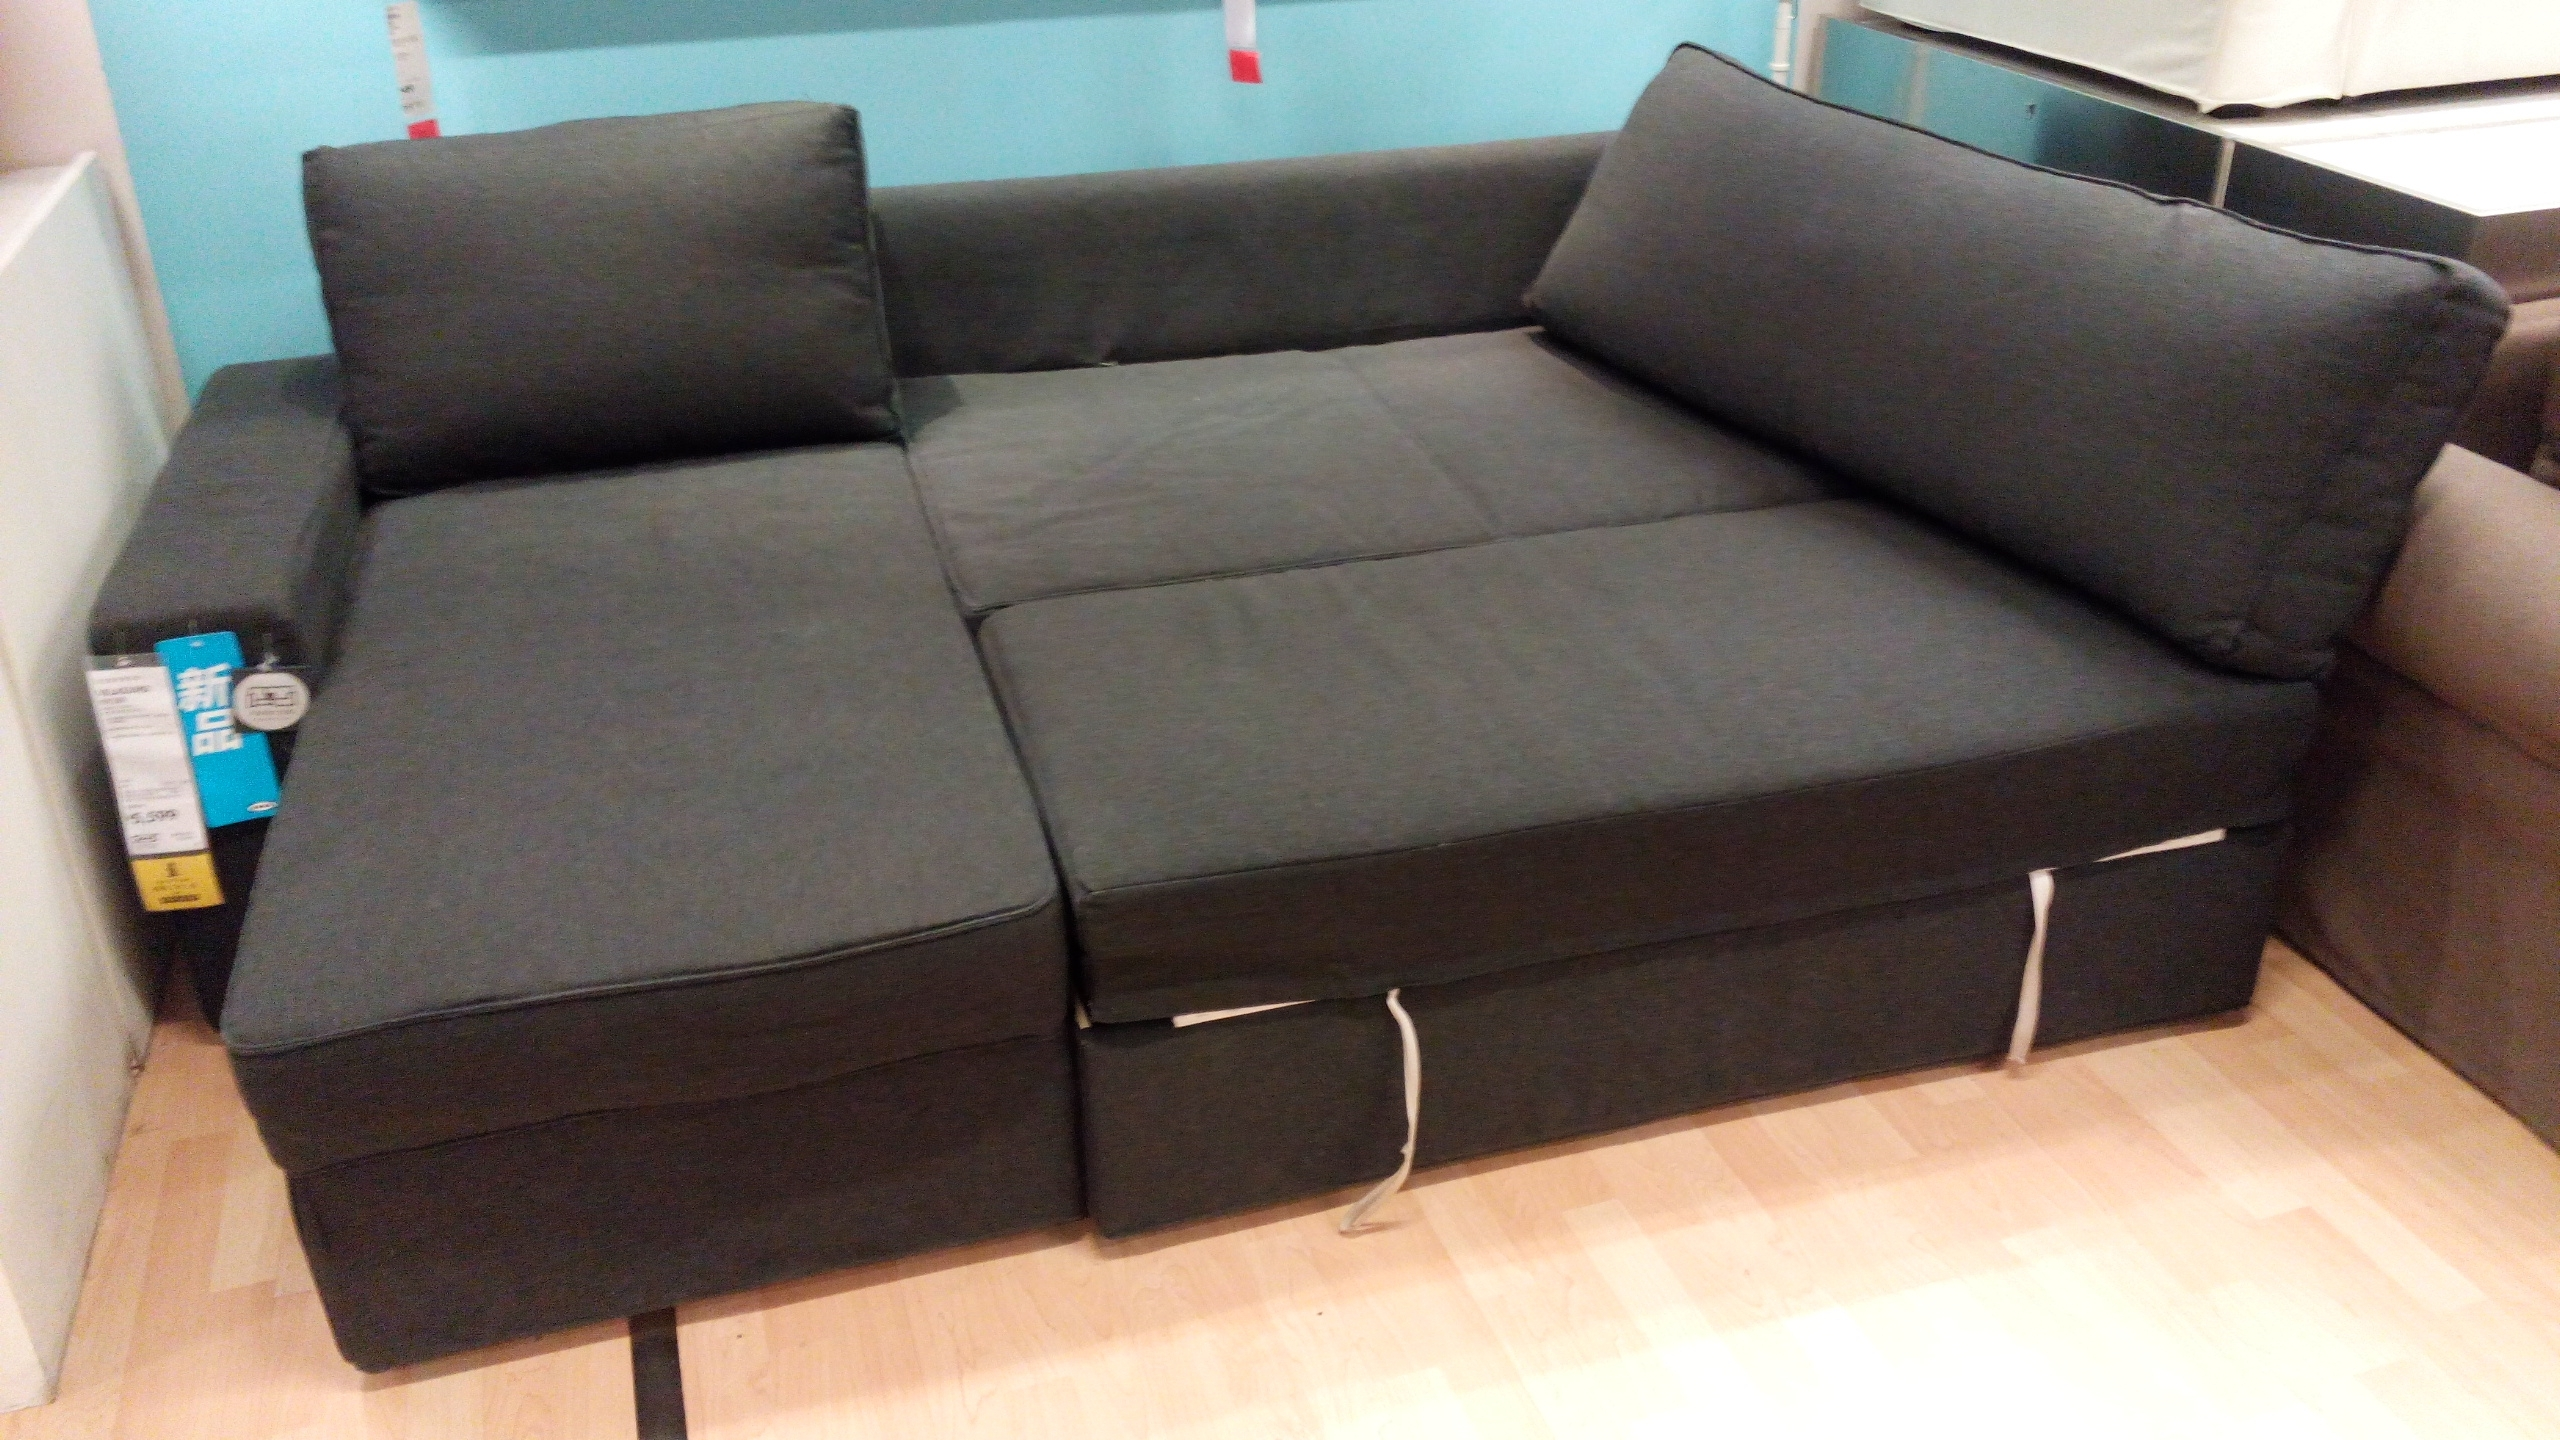 Ikea Vilasund And Backabro Review – Return Of The Sofa Bed Clones! Intended For Ikea Sectional Sofa Beds (View 4 of 10)